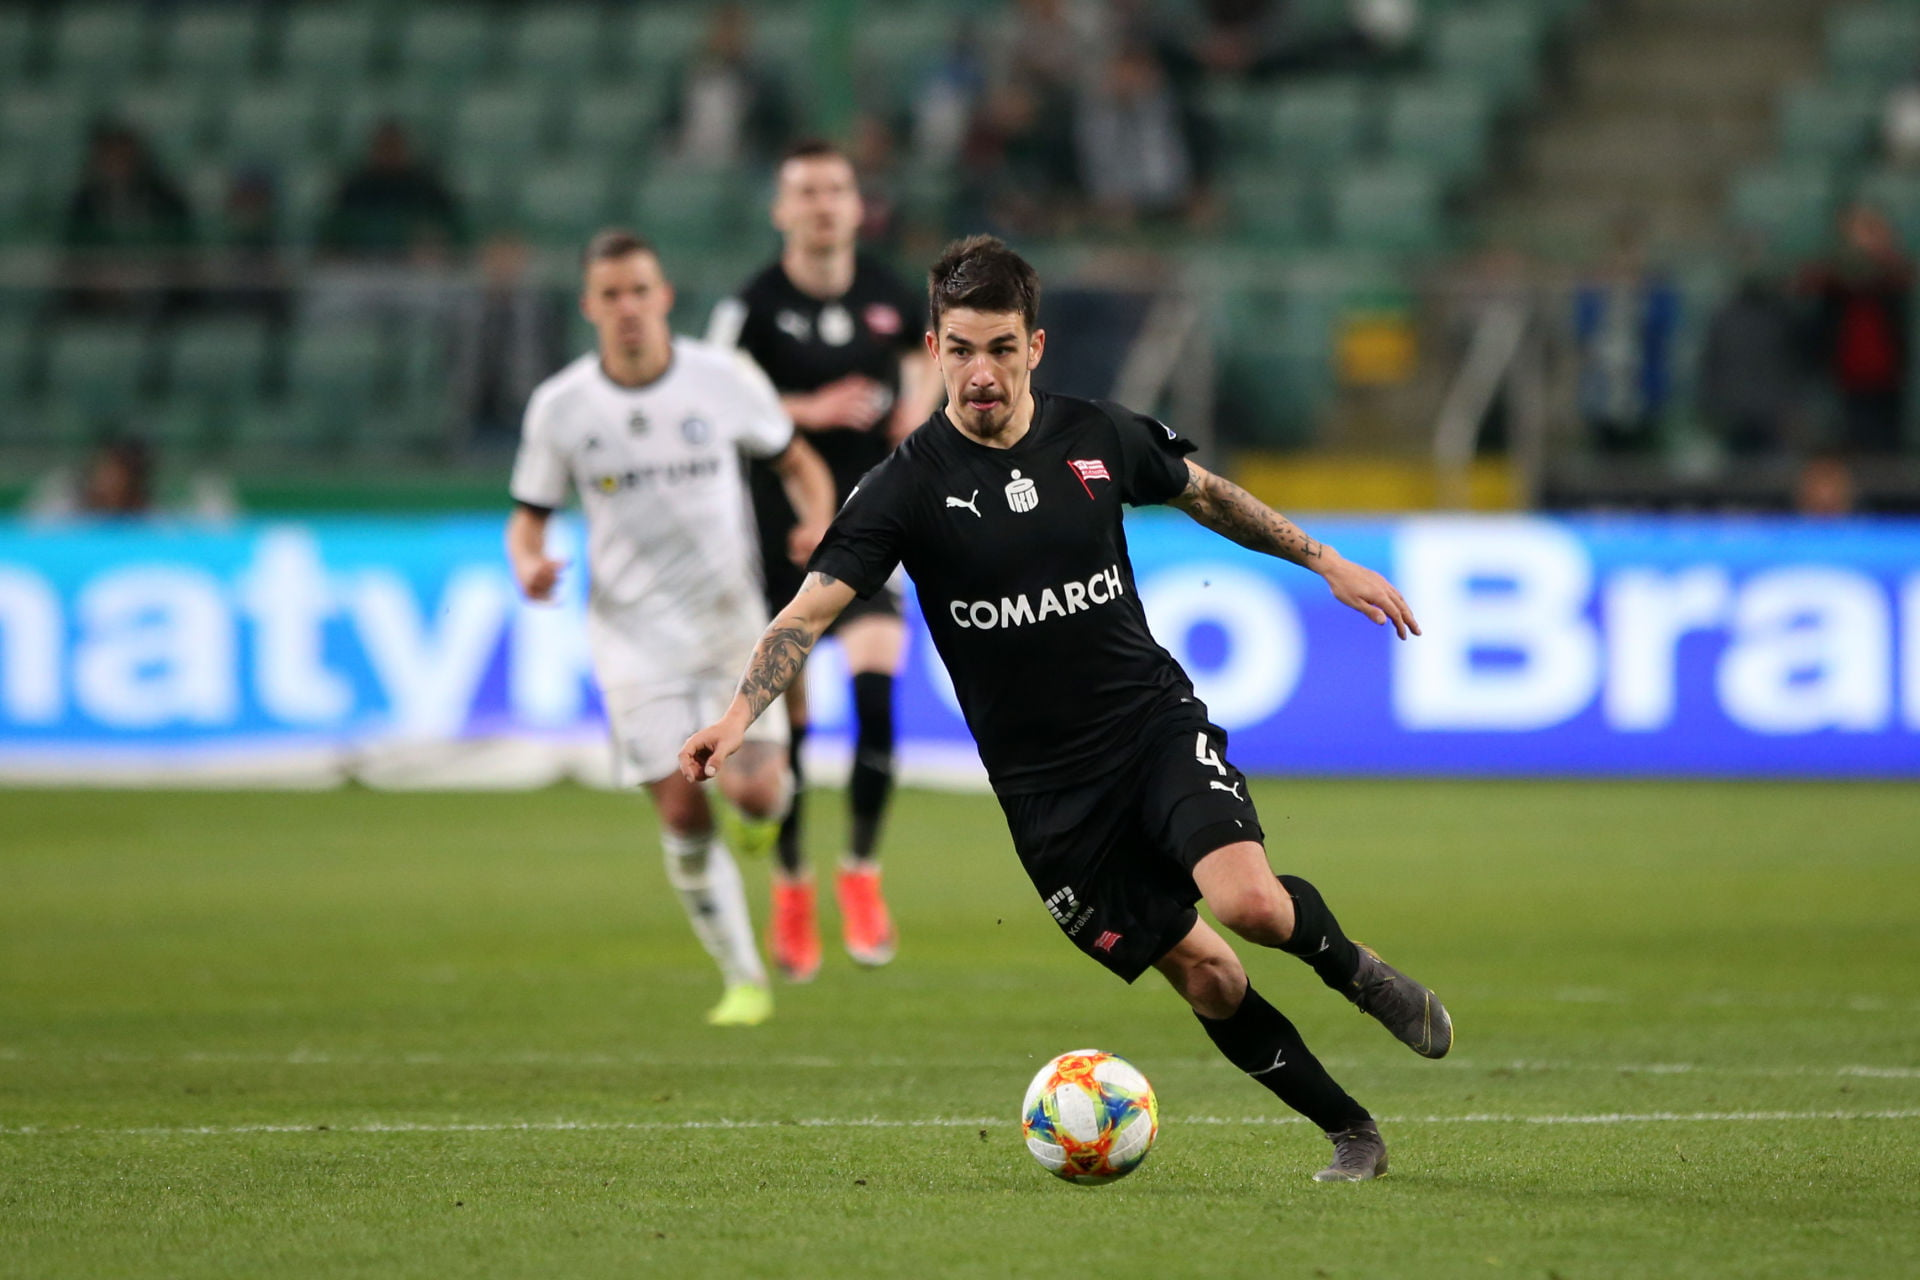 WARSZAWA 20.04.2019 MECZ 31. KOLEJKA LOTTO EKSTRAKLASA SEZON 2018/19: LEGIA WARSZAWA - CRACOVIA KRAKOW 1:0 --- POLISH FOOTBALL TOP LEAGUE MATCH: LEGIA WARSAW - CRACOVIA CRACOW 1:0 SERGIU HANCA FOT. PIOTR KUCZA/ 400mm.pl